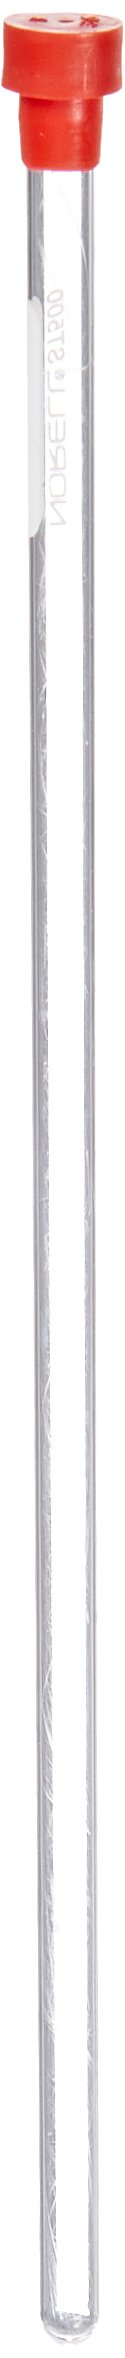 Chemglass Norell C-ST550-7 Type 1 Class B Glass Standard Series NMR Tube with Cap, 100 MHz, 7'' Long (Pack of 5) by Chemglass (Image #1)